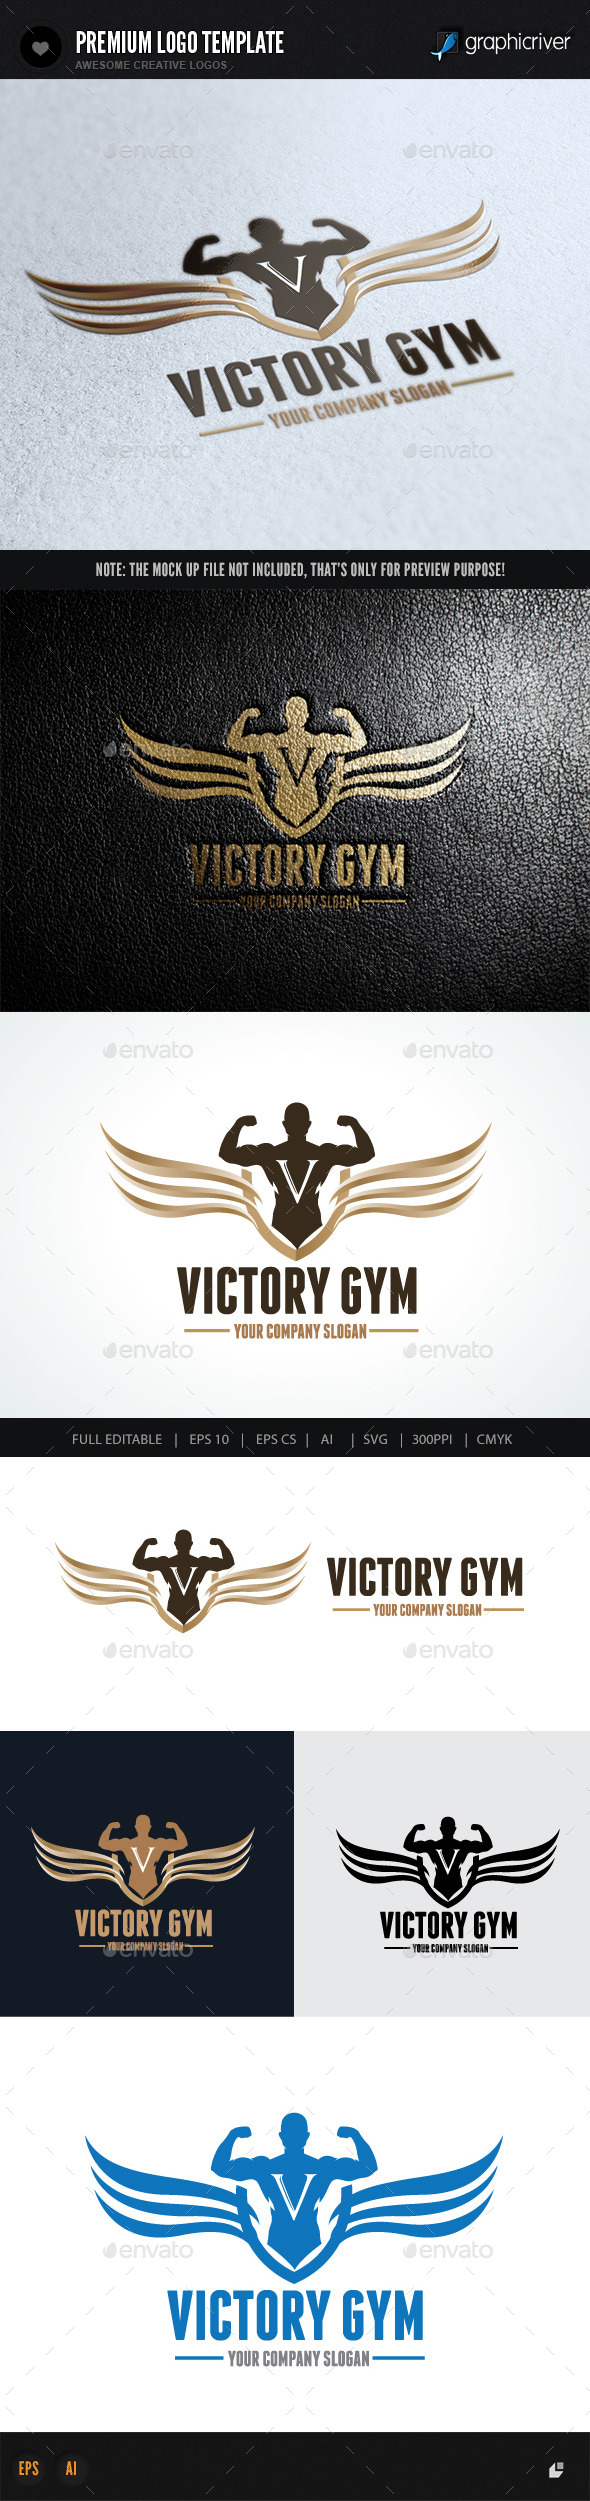 Victory Gym - Crests Logo Templates